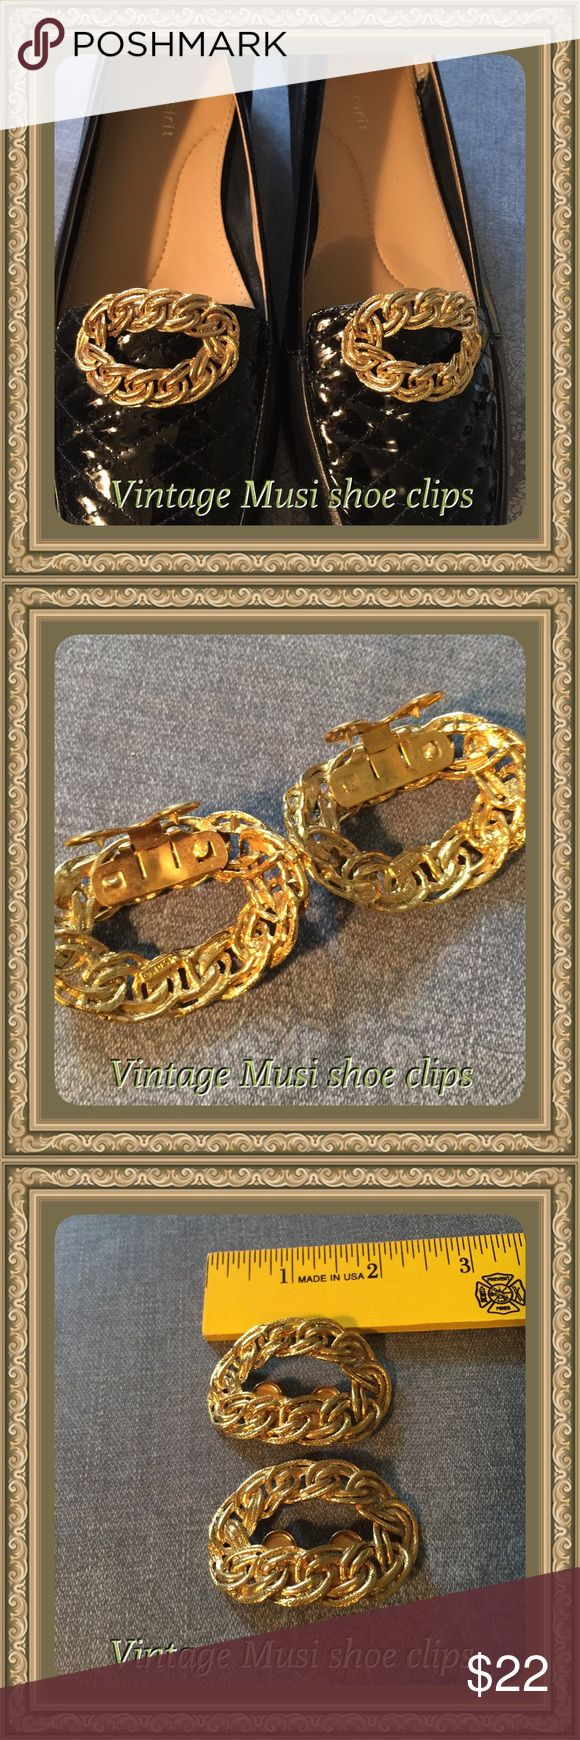 Vintage Musi shoe clips Vintage Musi shoe clips, gold tone SPat460, shoes are not included Vintage MUSI Jewelry